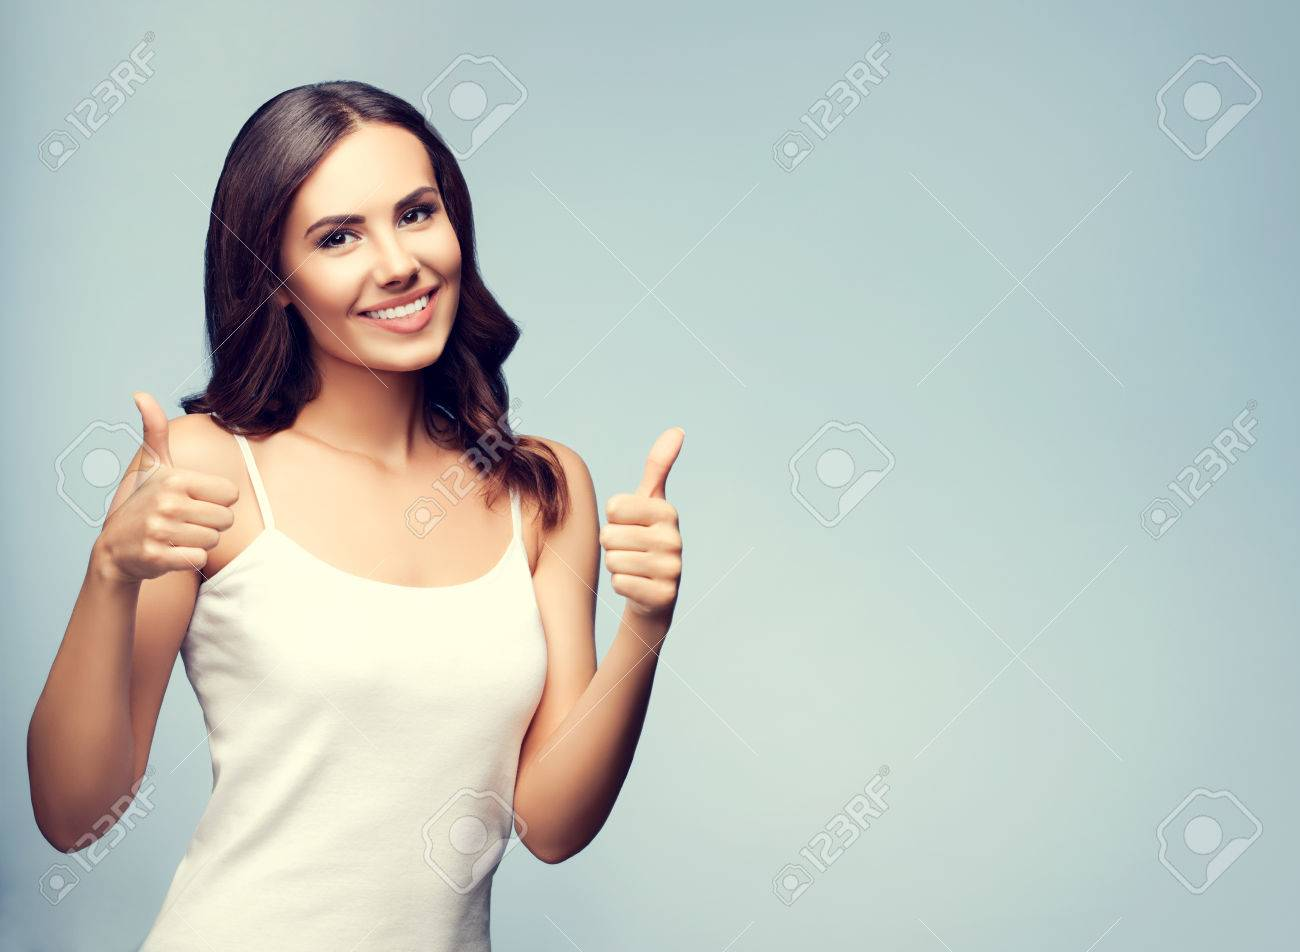 Portrait of beautiful cheerful smiling young woman showing thumb up gesture, with blank copyspace area for text or slogan - 41556468